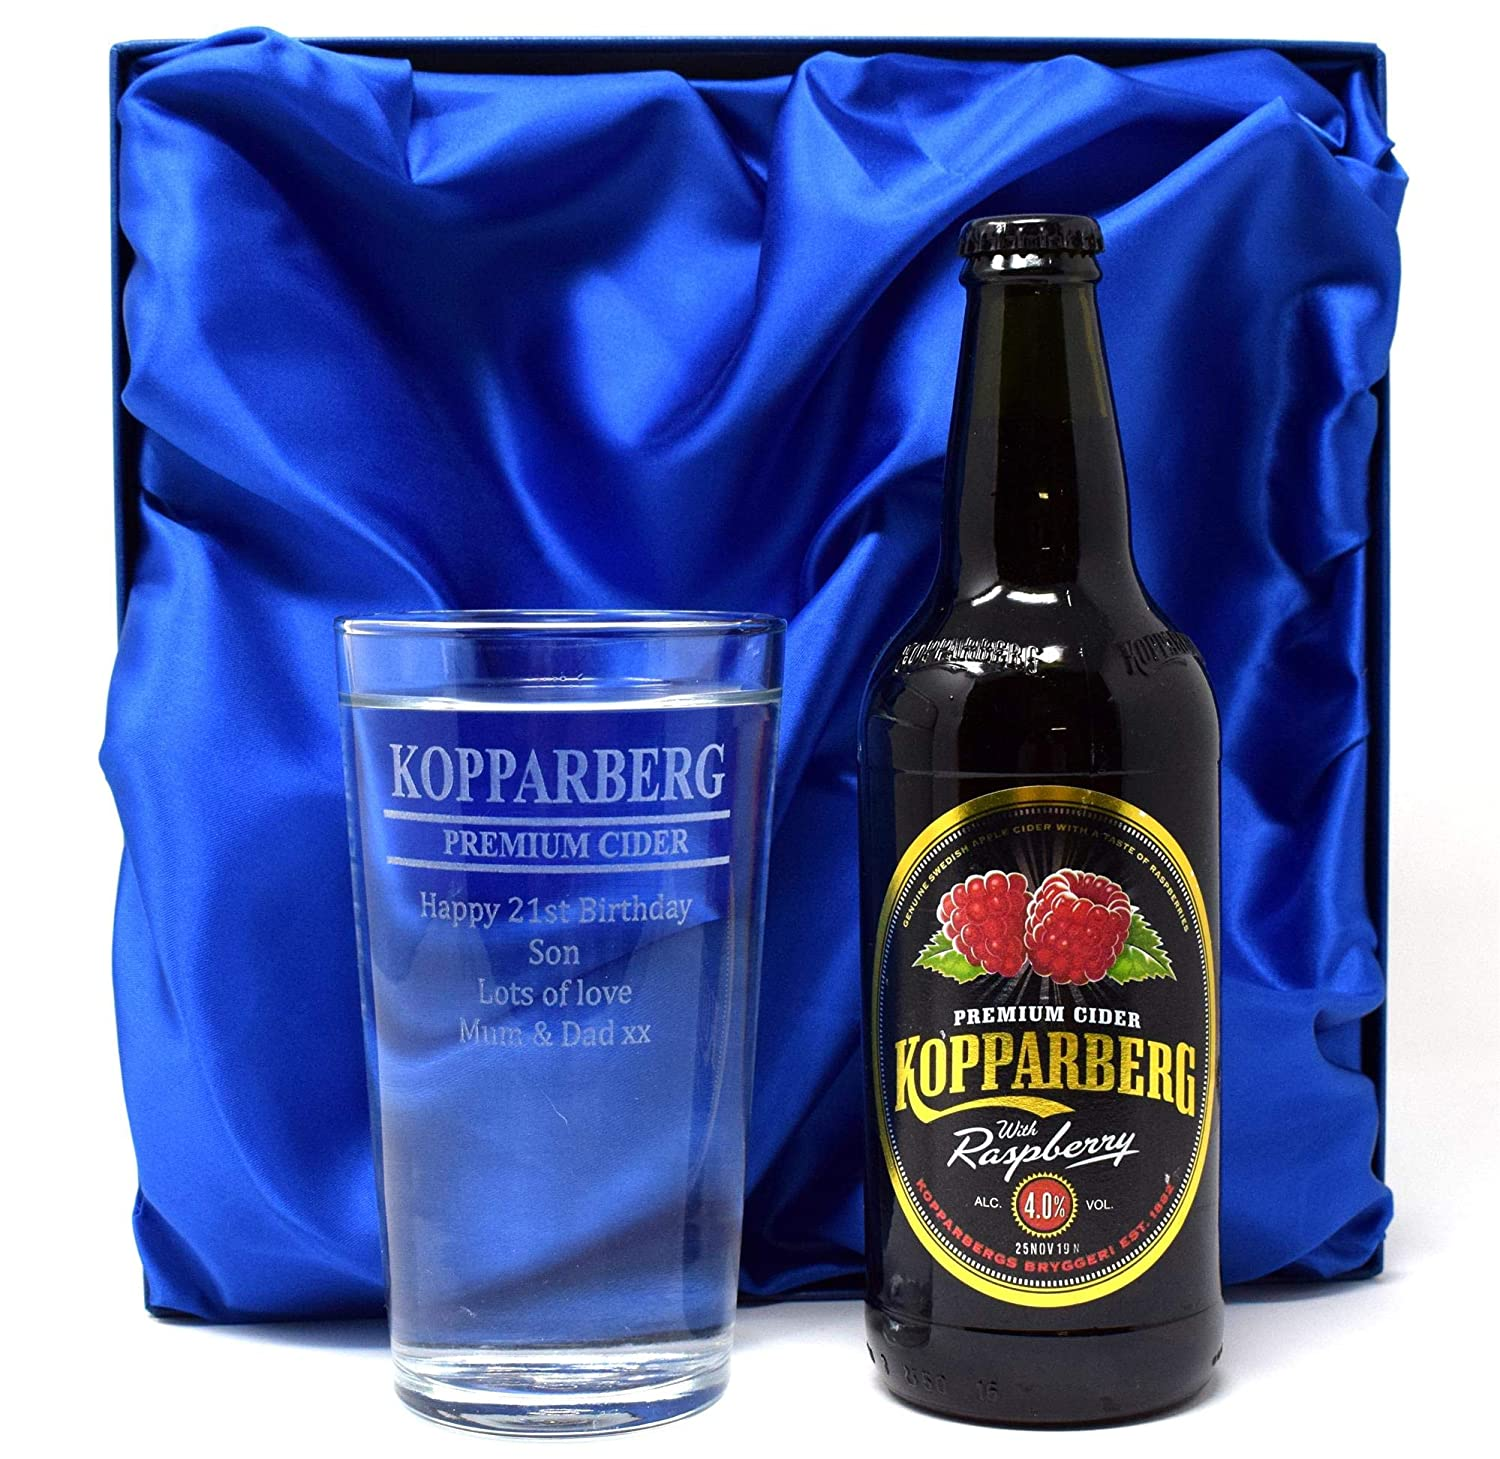 Engraved/Personalised KOPPARBERG Design Pint Glass & Bottle of Raspberry Cider in Silk Gift Box For Boys/Girls/Men/Women/18th/21st/30th/40th/50th/60th/65th/70th/Birthday/Christmas/Fathers Day/Step Dad/Daddy/Mum/Mummy/Sister/Auntie/Grandad/Son/Uncle/Hu